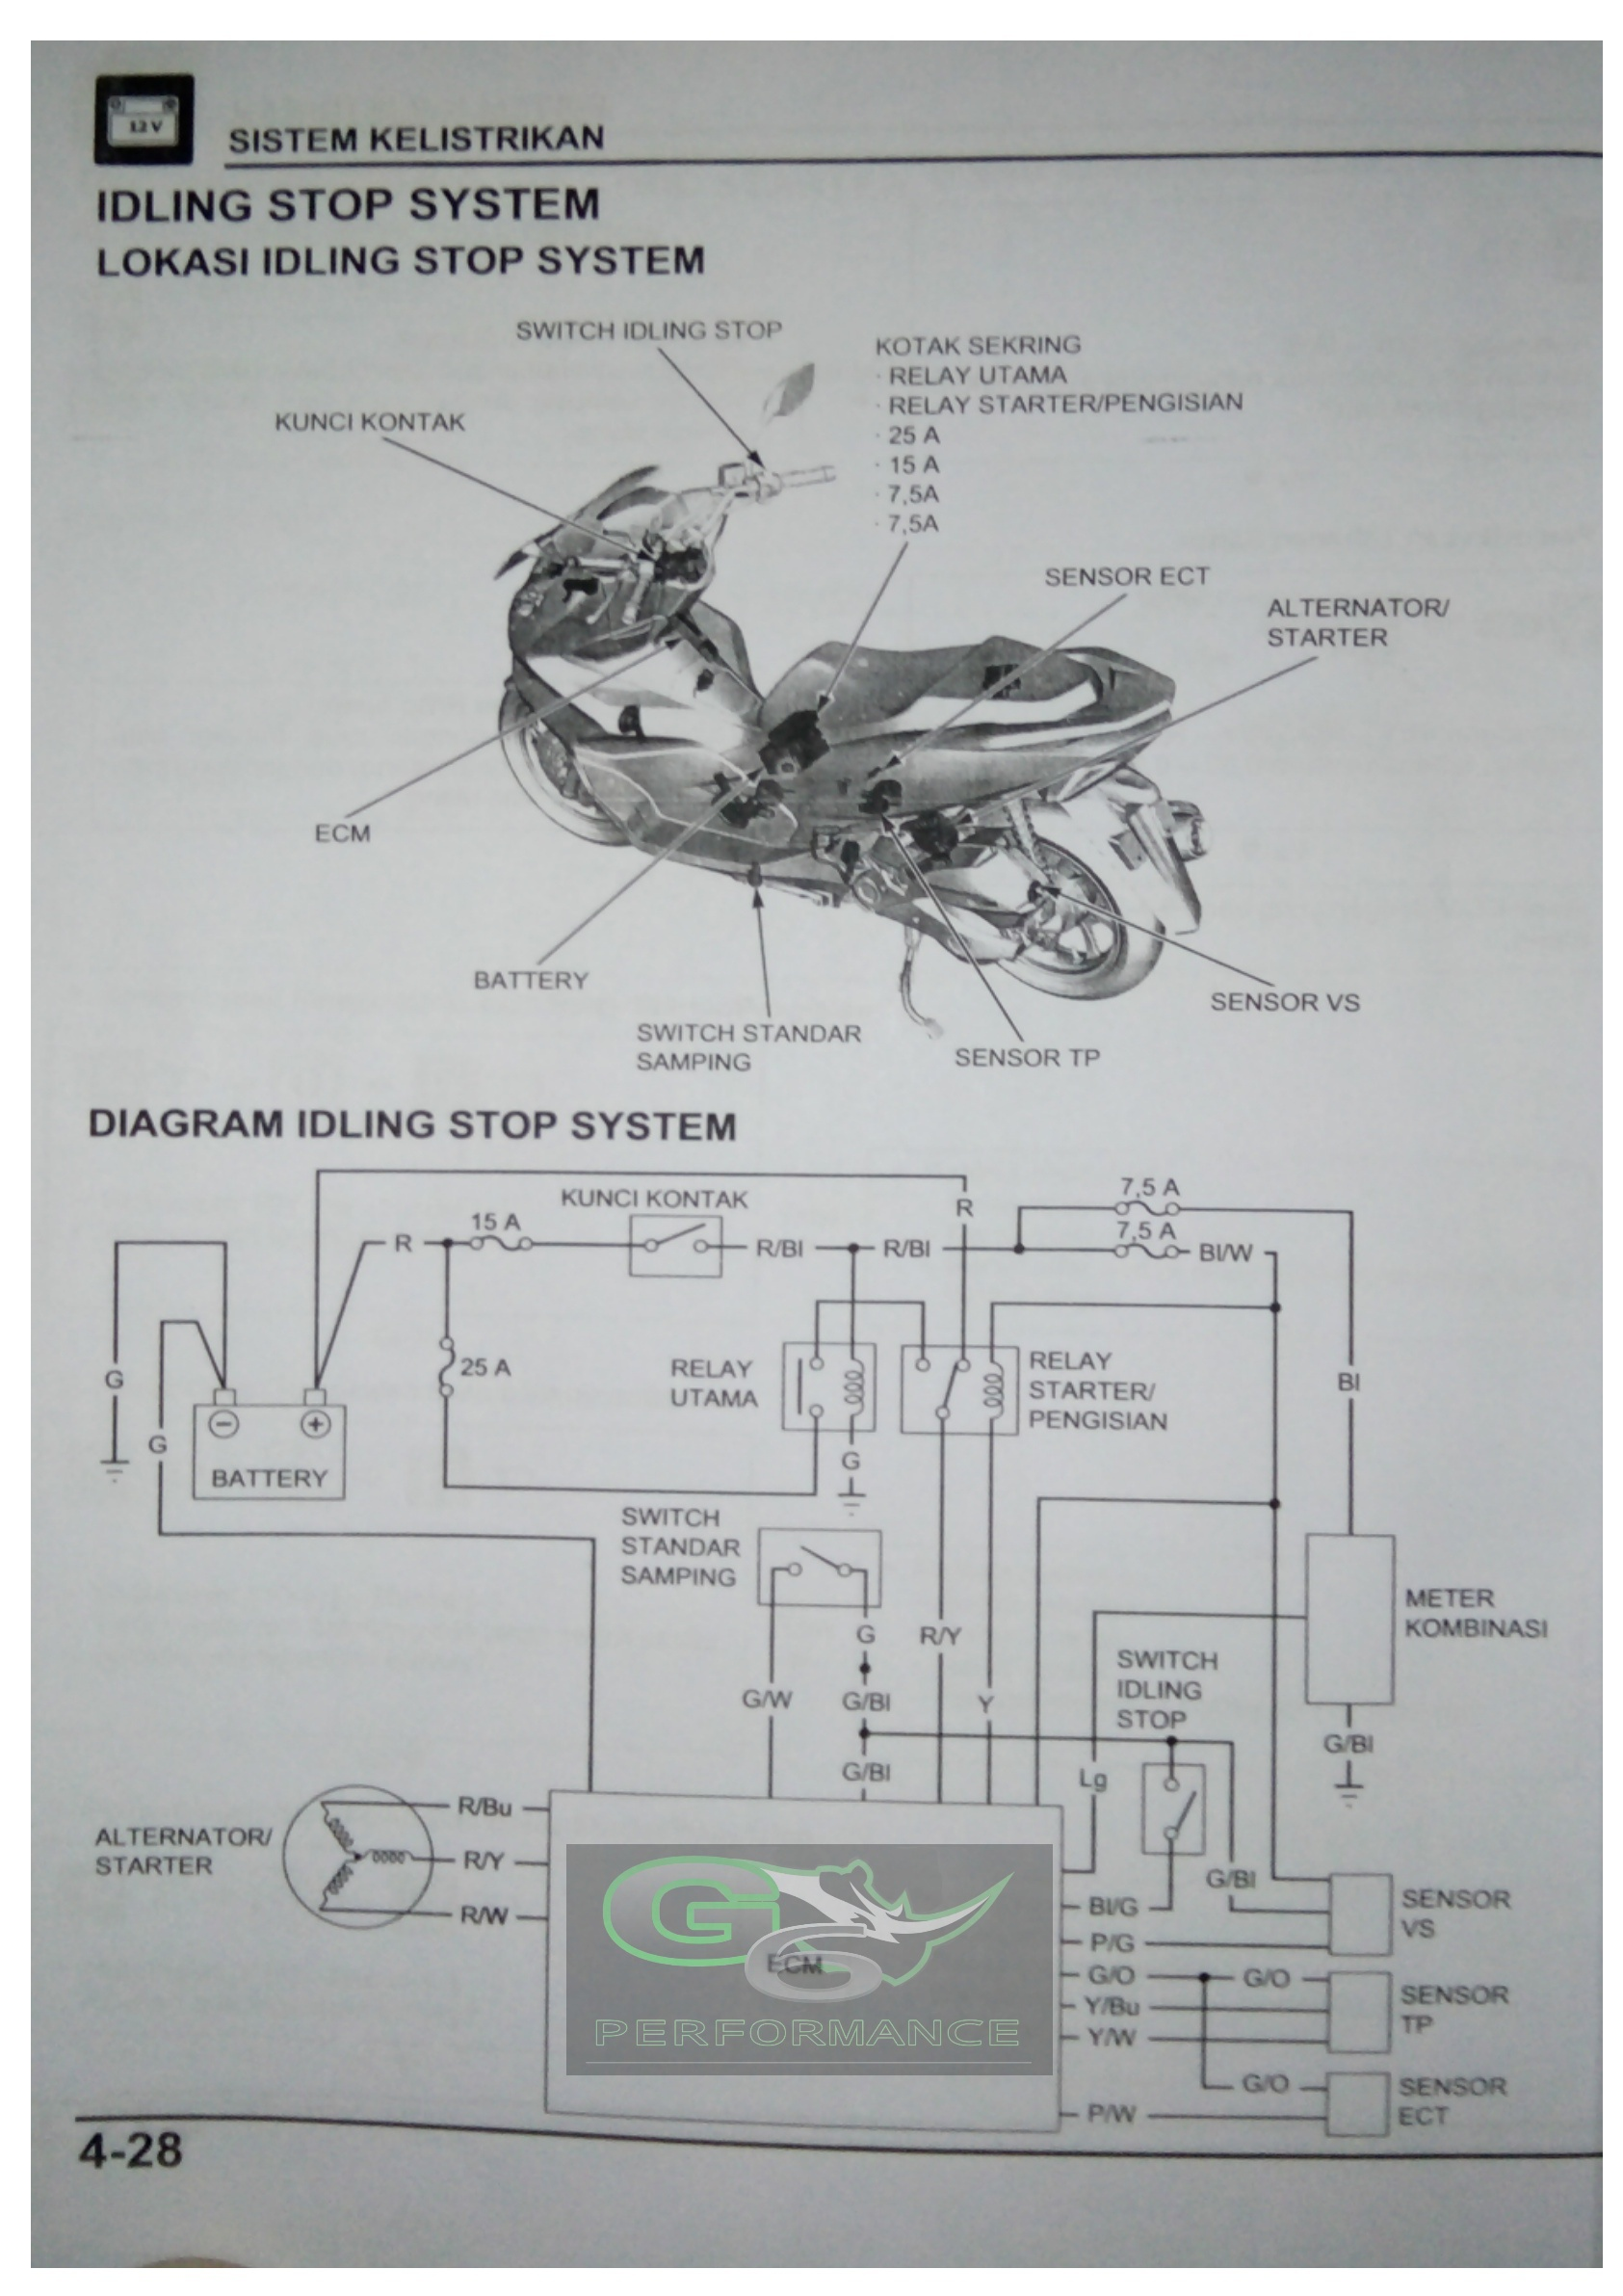 medium resolution of electric wiring system diagram honda new pcx 150 2018 gisix s blog honda pcx 150 wiring diagram wiring diagram honda pcx